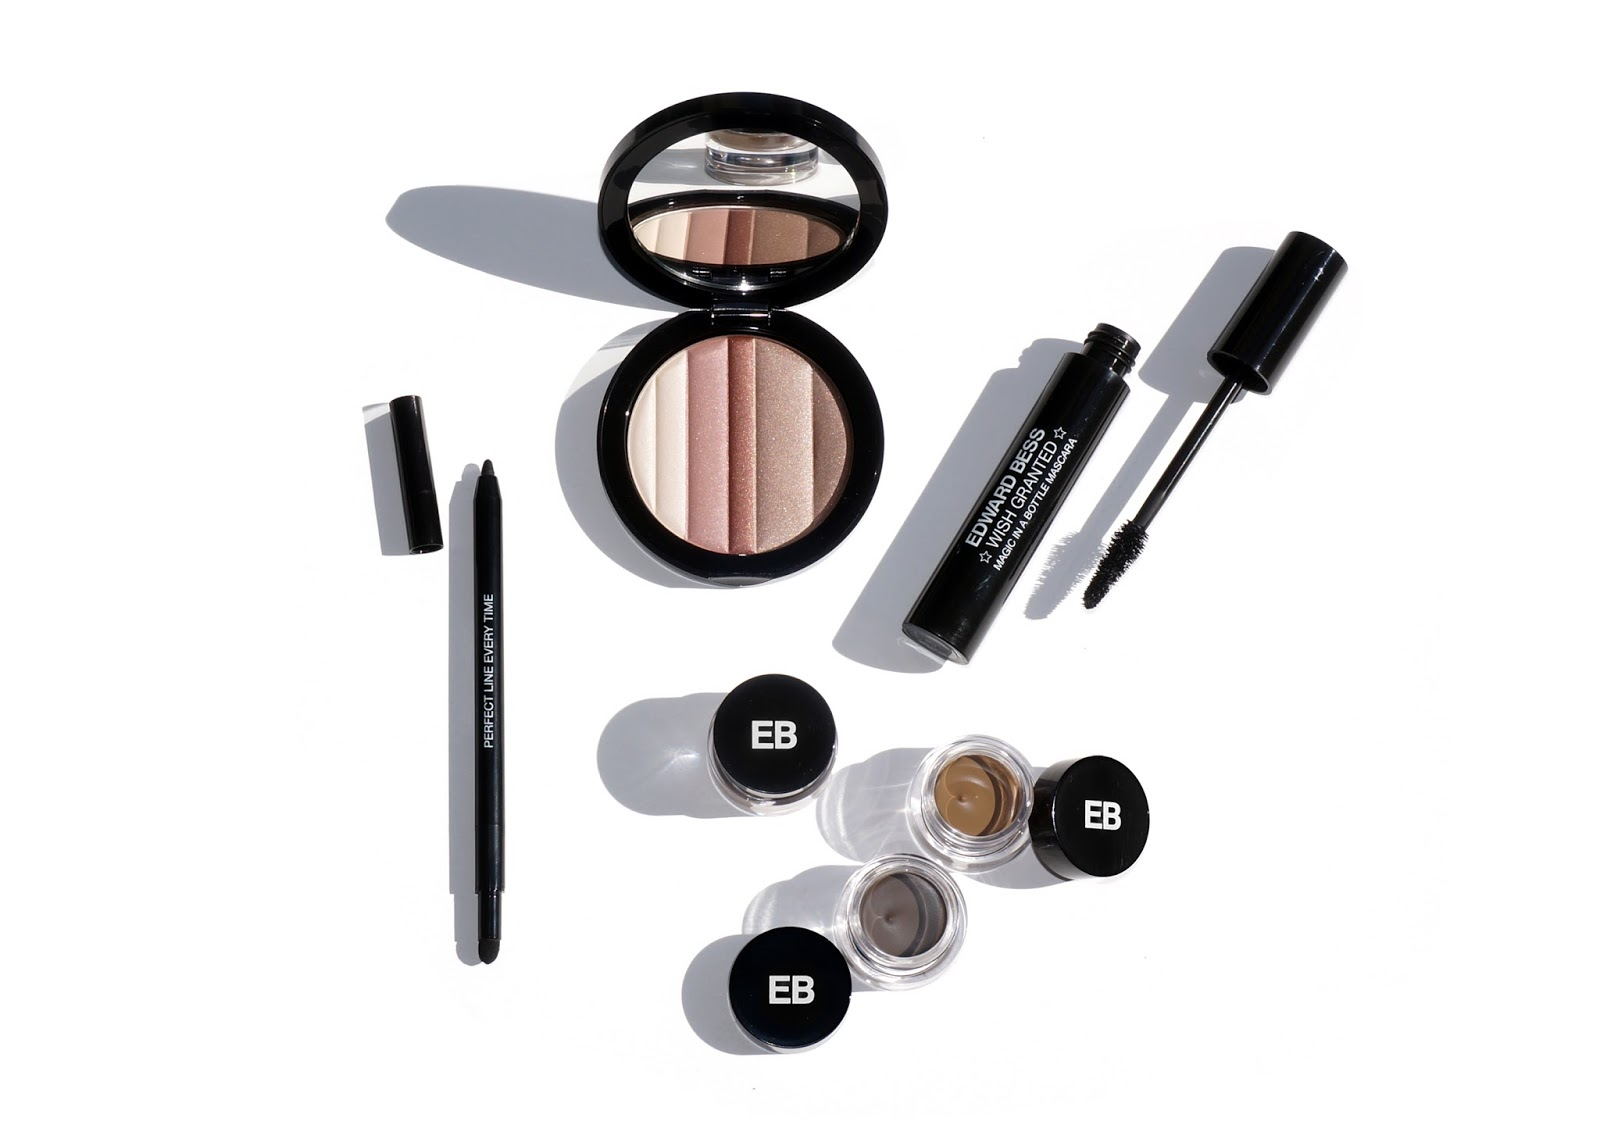 Edward Bess Earth Tones + New Eye Launches